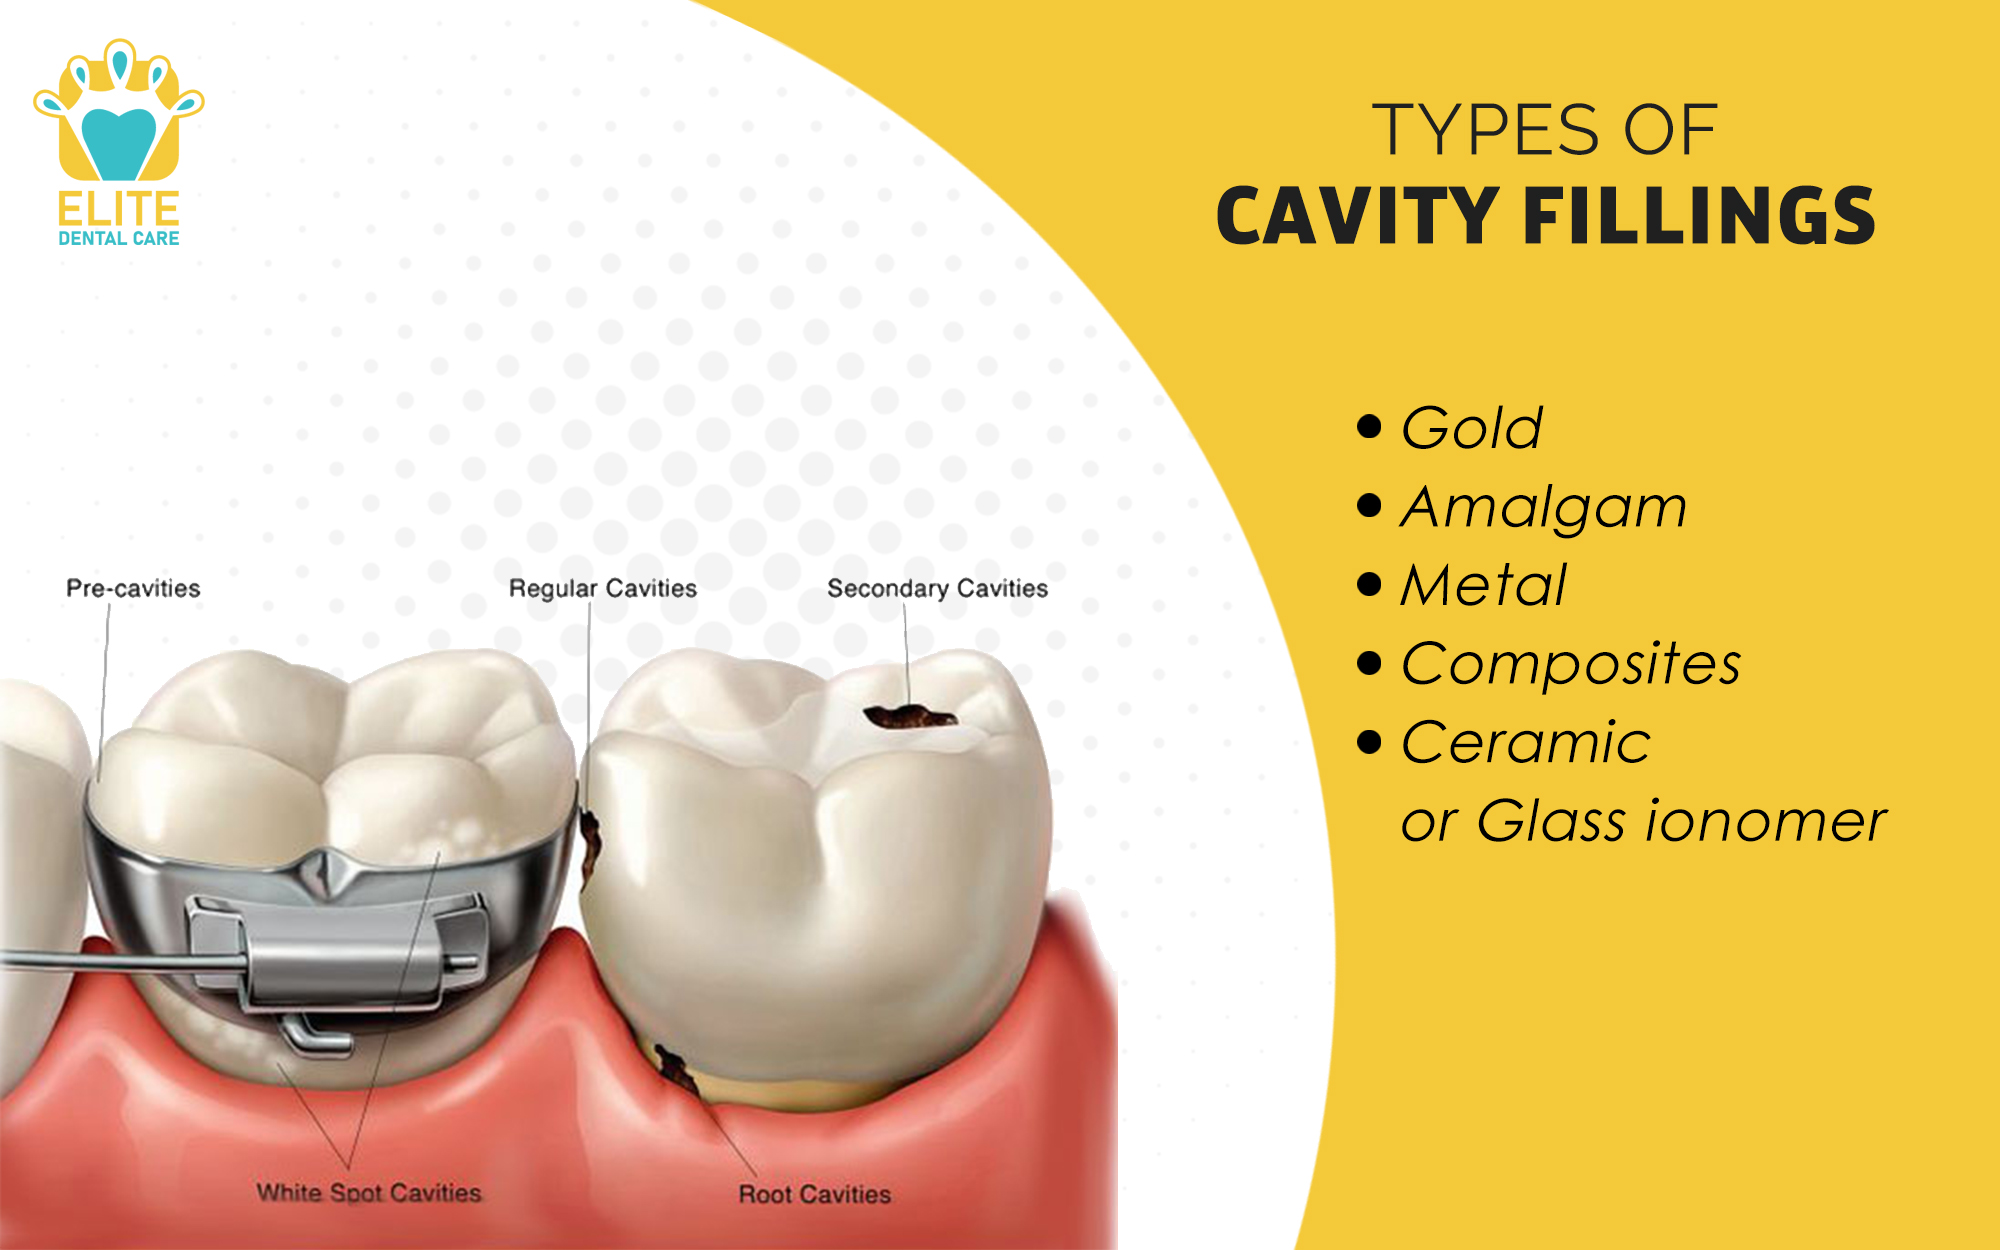 TYPES OF CAVITY FILLINGS